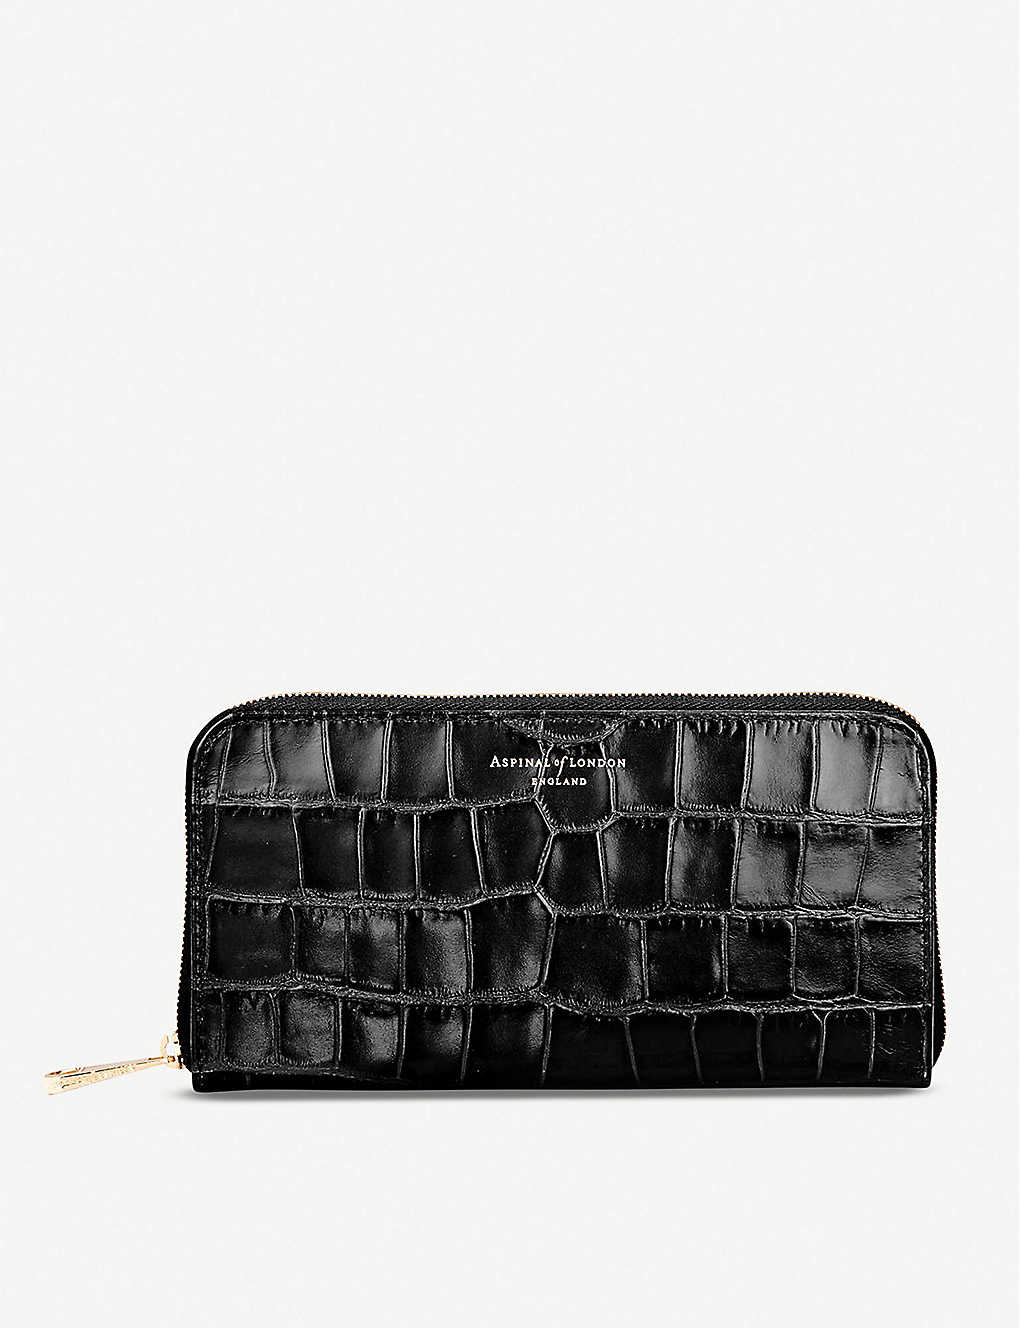 ASPINAL OF LONDON: Continental mock-croc leather clutch wallet